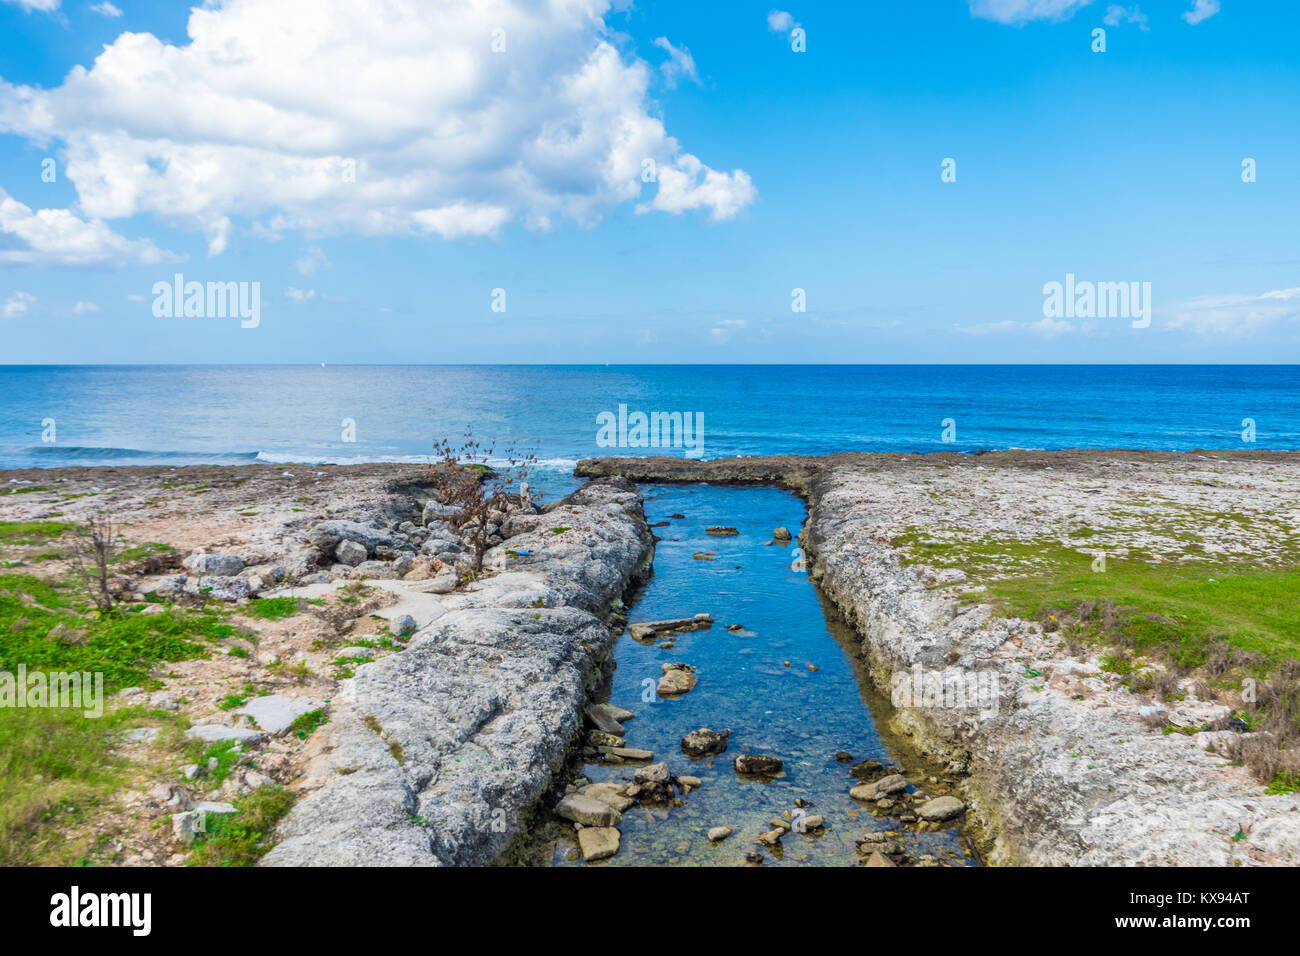 Perfect sea horizon and river in the foreground in beautiful sunny day in la Havana - Stock Image